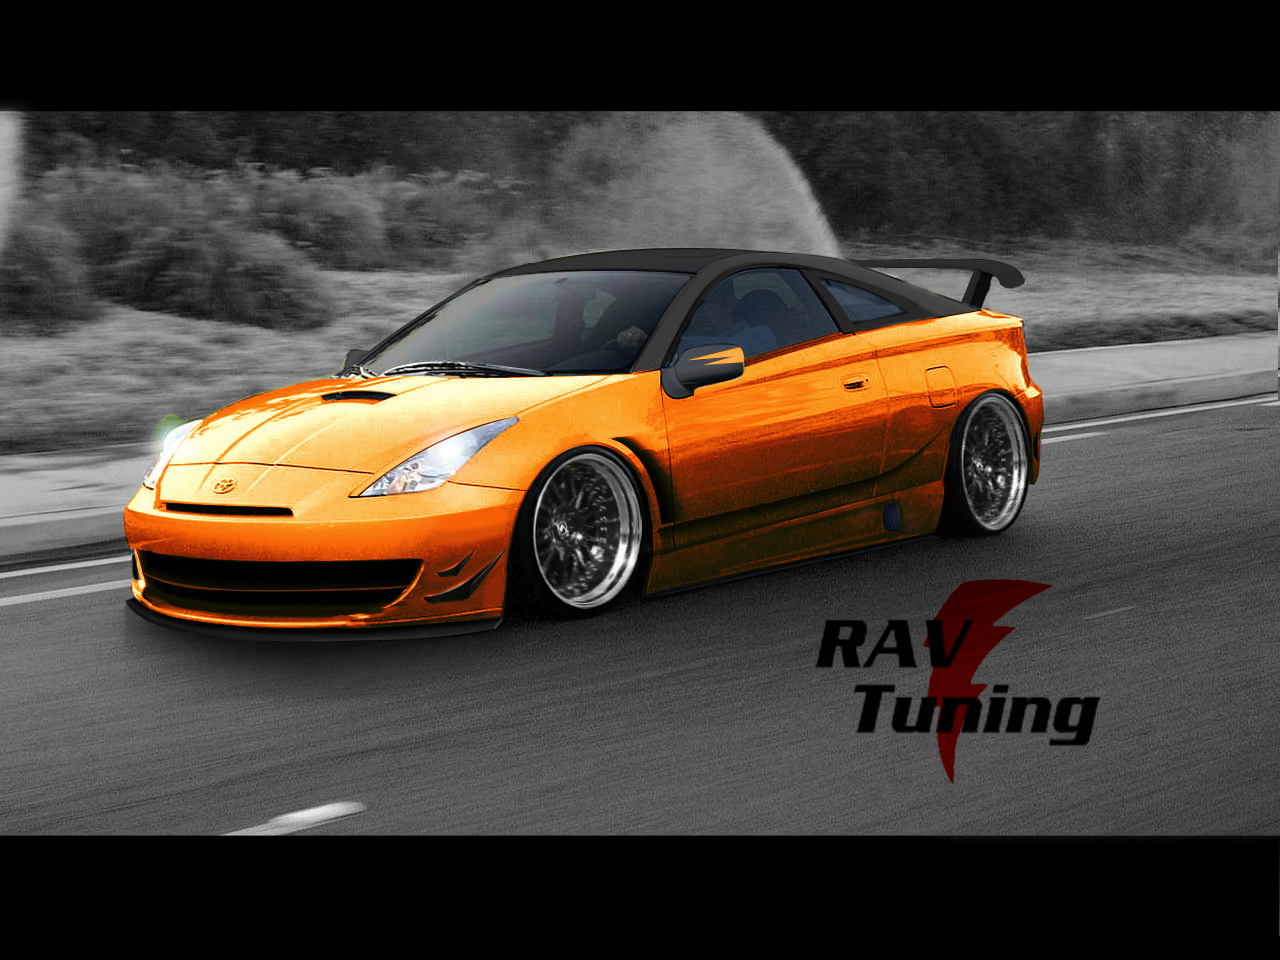 rav tuning toyota celica on fire. Black Bedroom Furniture Sets. Home Design Ideas